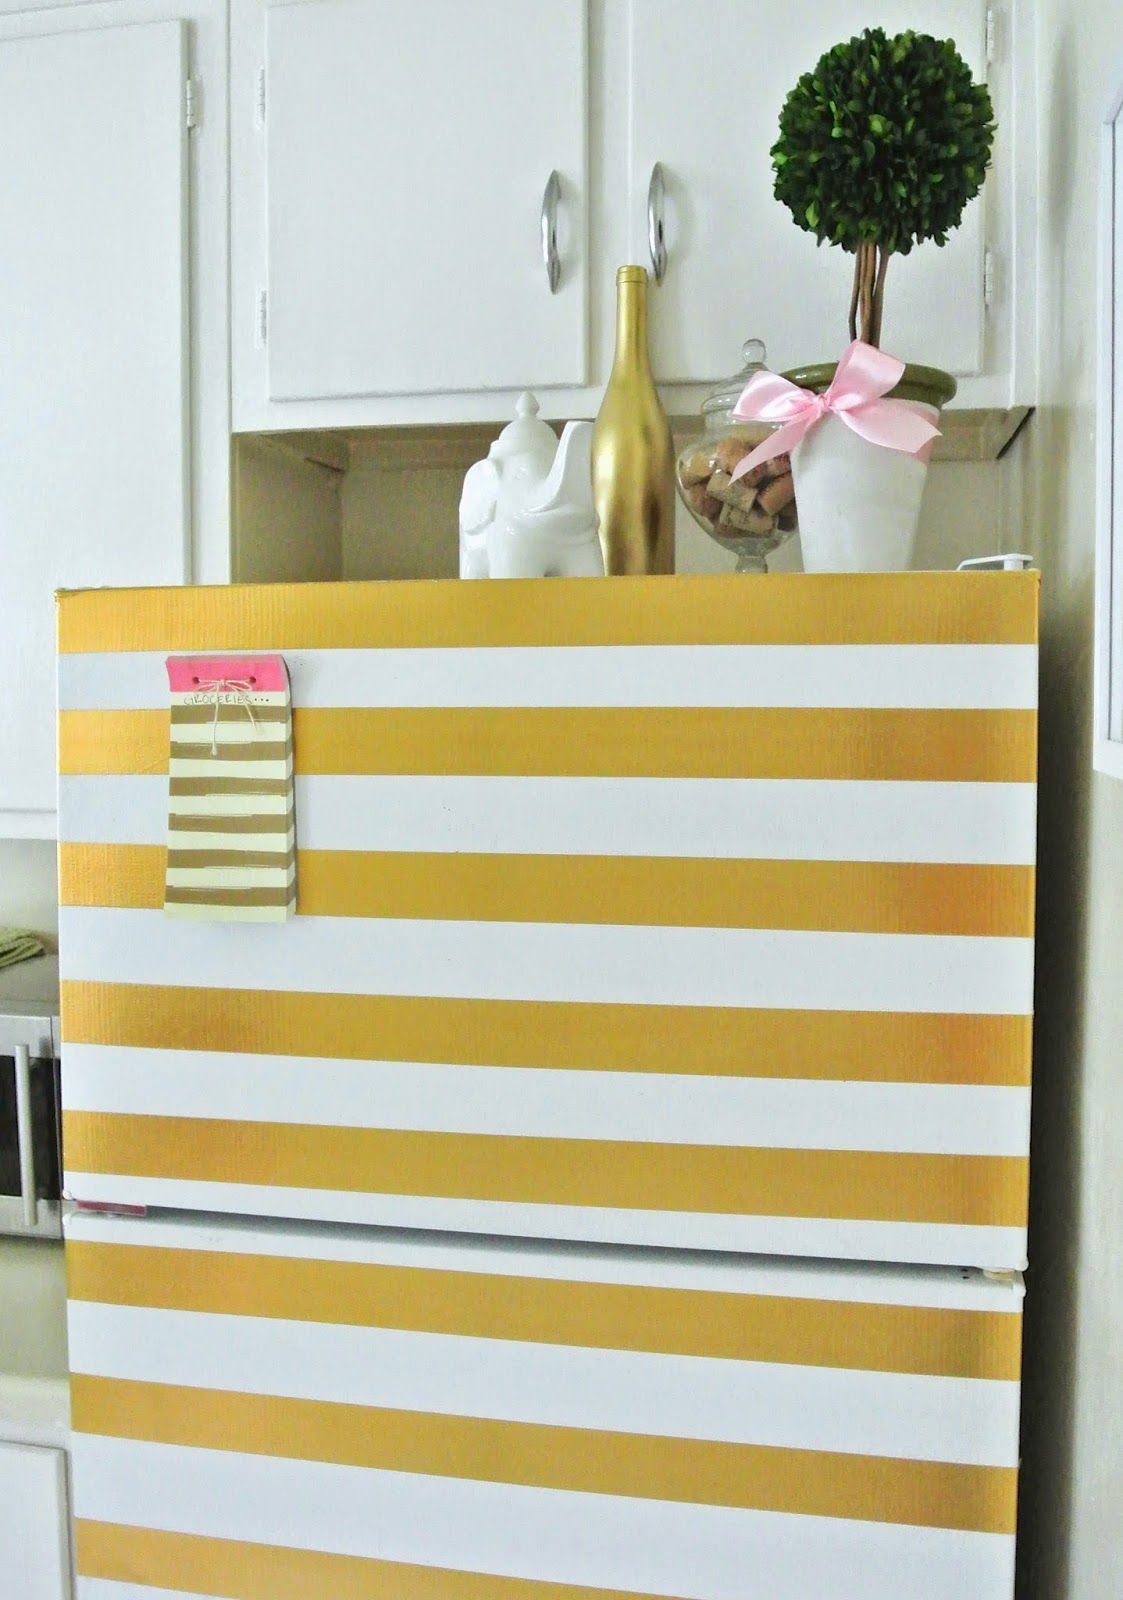 The Monogrammed Life: DIY Gold Striped Refrigerator | Decorating ...